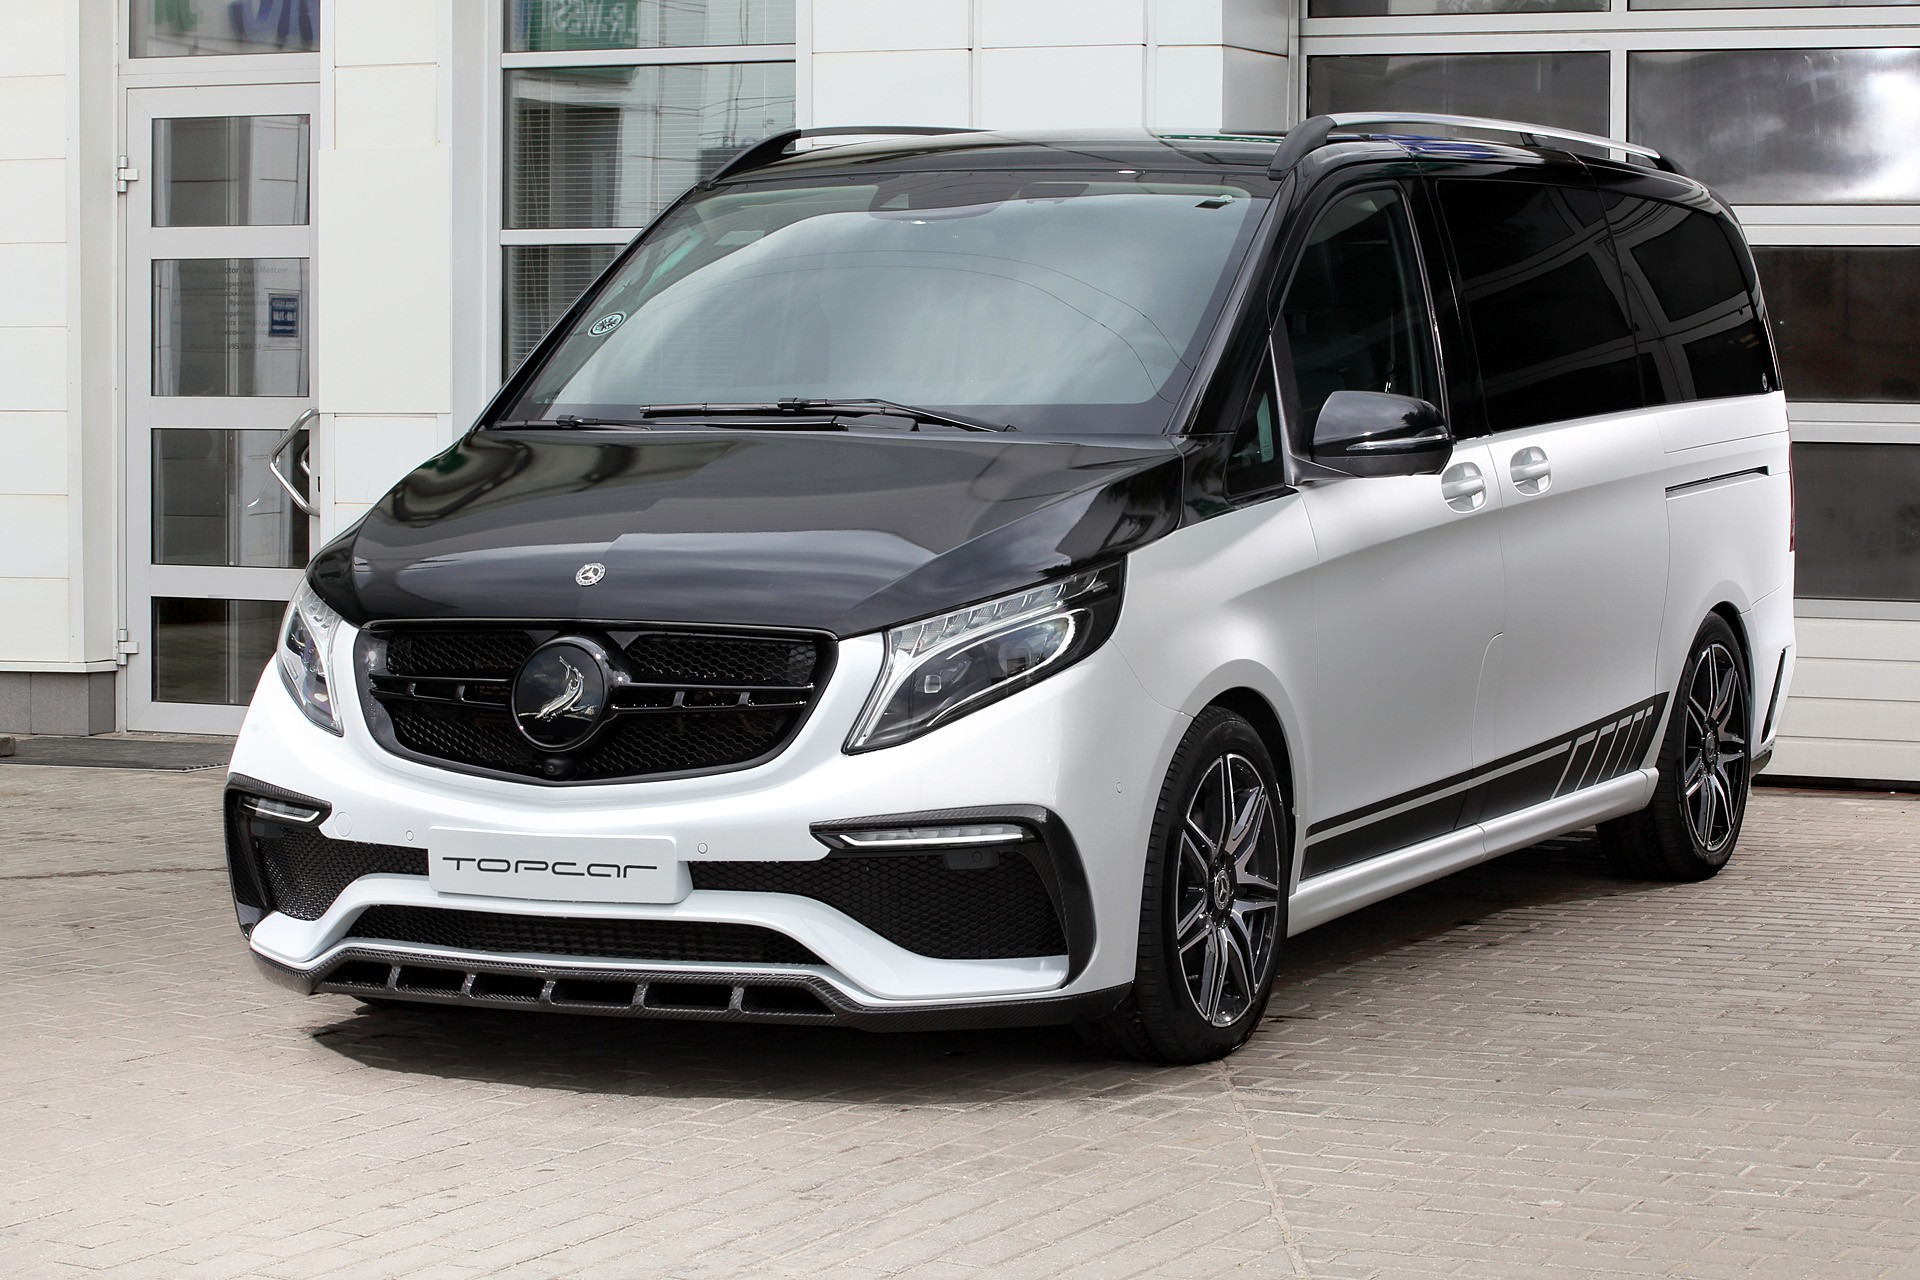 topcar revamps the exterior styling of the mercedes benz v class. Black Bedroom Furniture Sets. Home Design Ideas